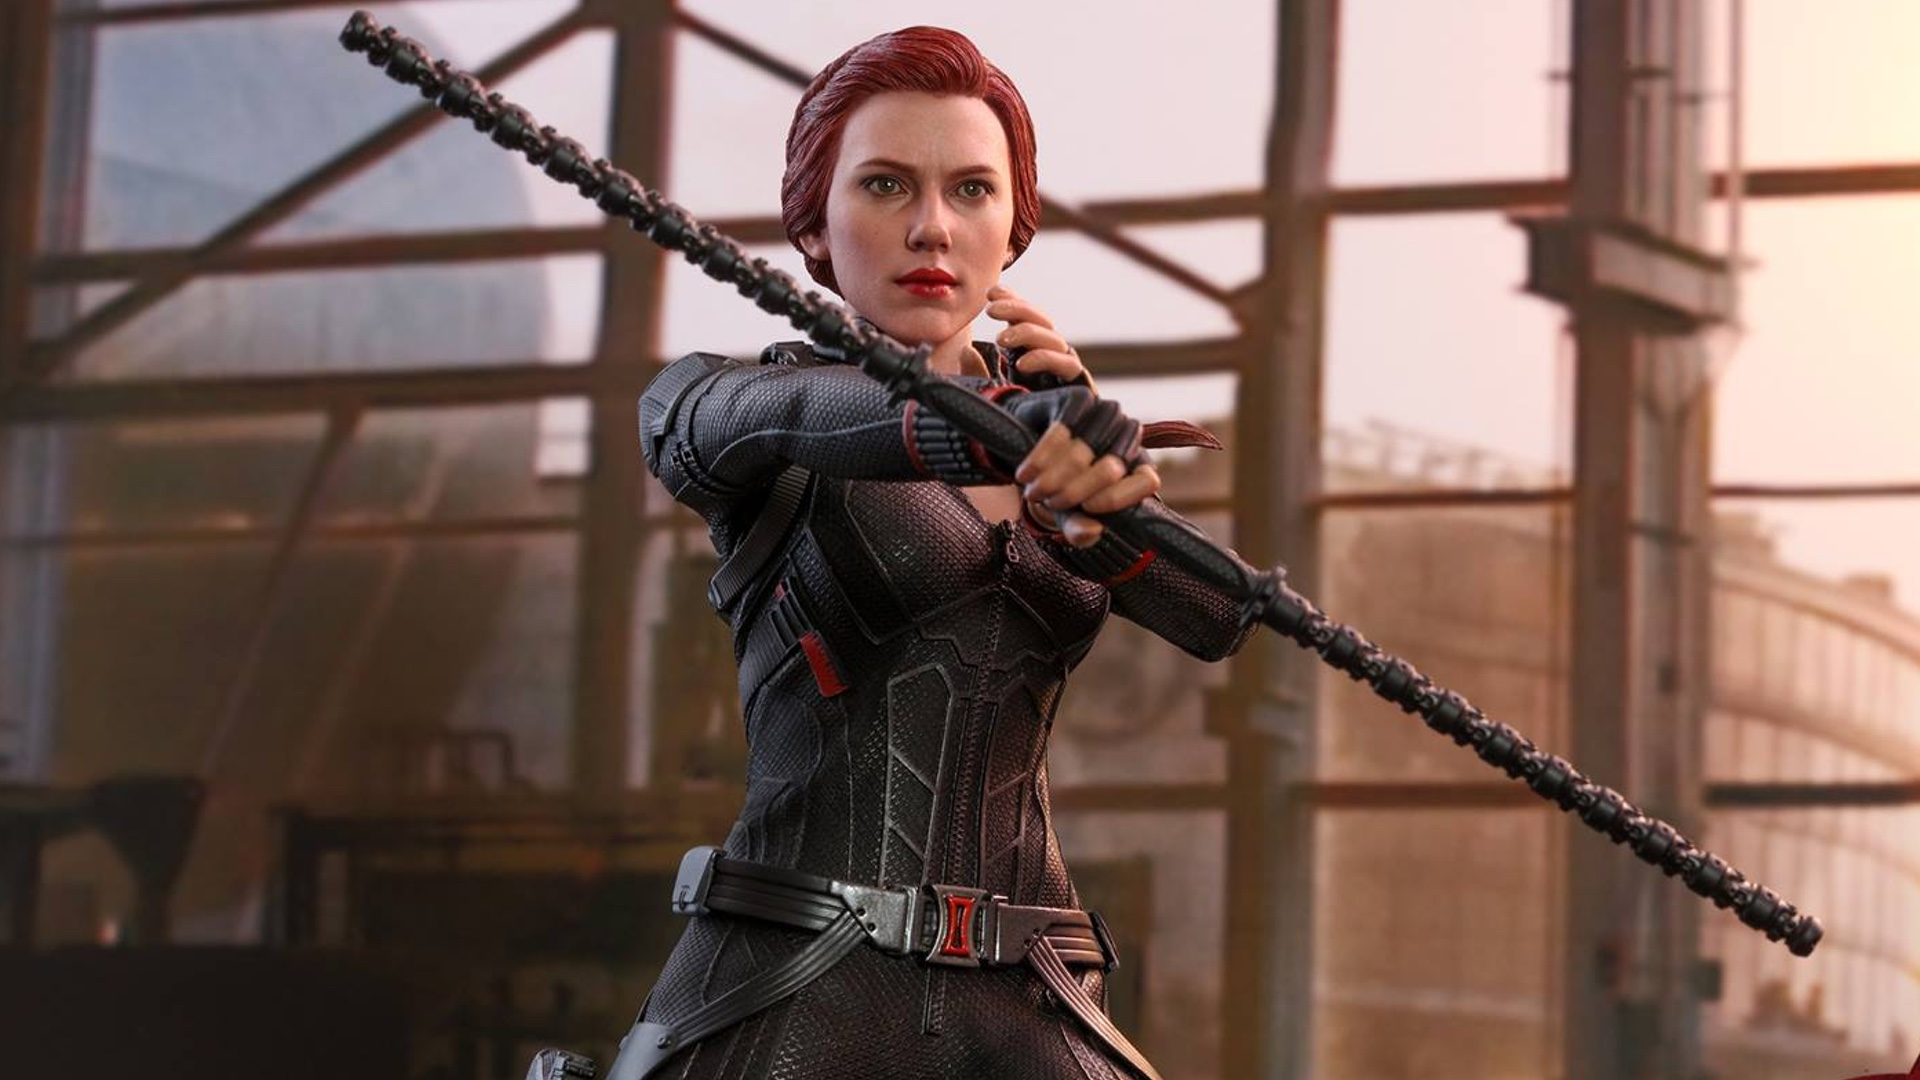 Hot Toys Reveals Their Avengers Endgame Black Widow Action Figure